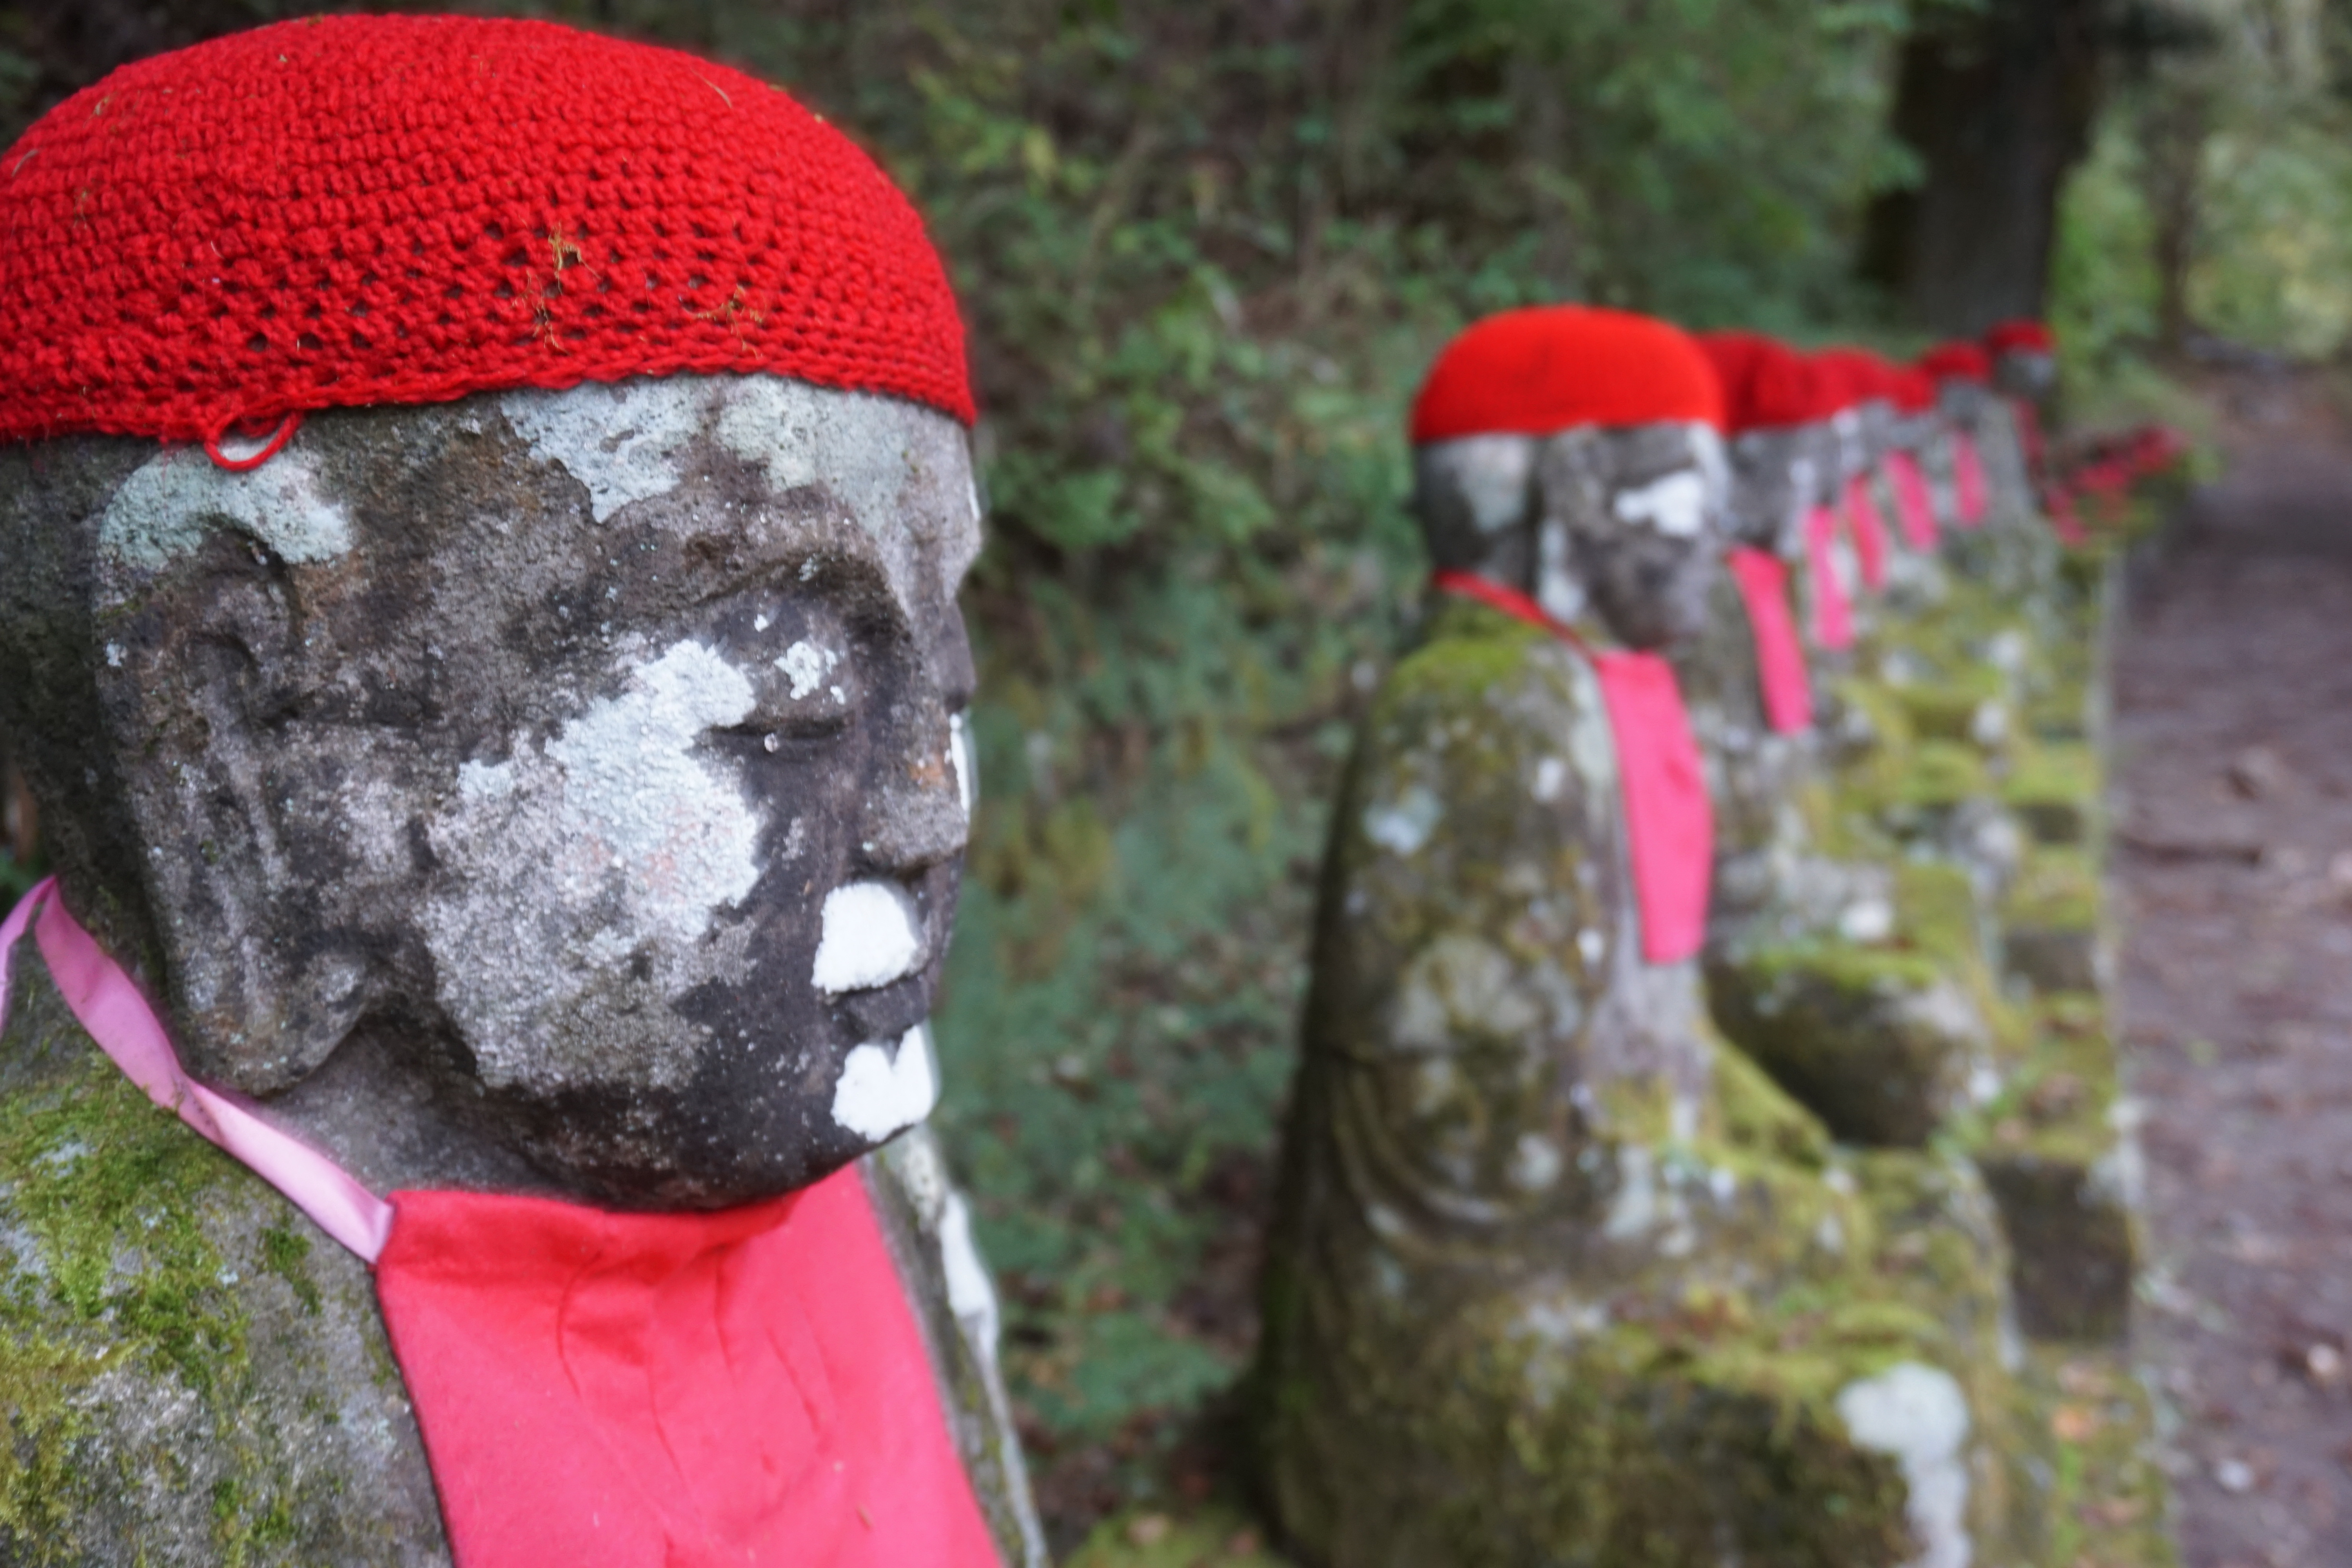 A close up of a stone Jizo statue with a red bonnet and a bib apron on the left of the picture, with a row of other seated Jizo, out of focus. There is moss on the statues and on the wall behind the statues, in Nikko, Japan